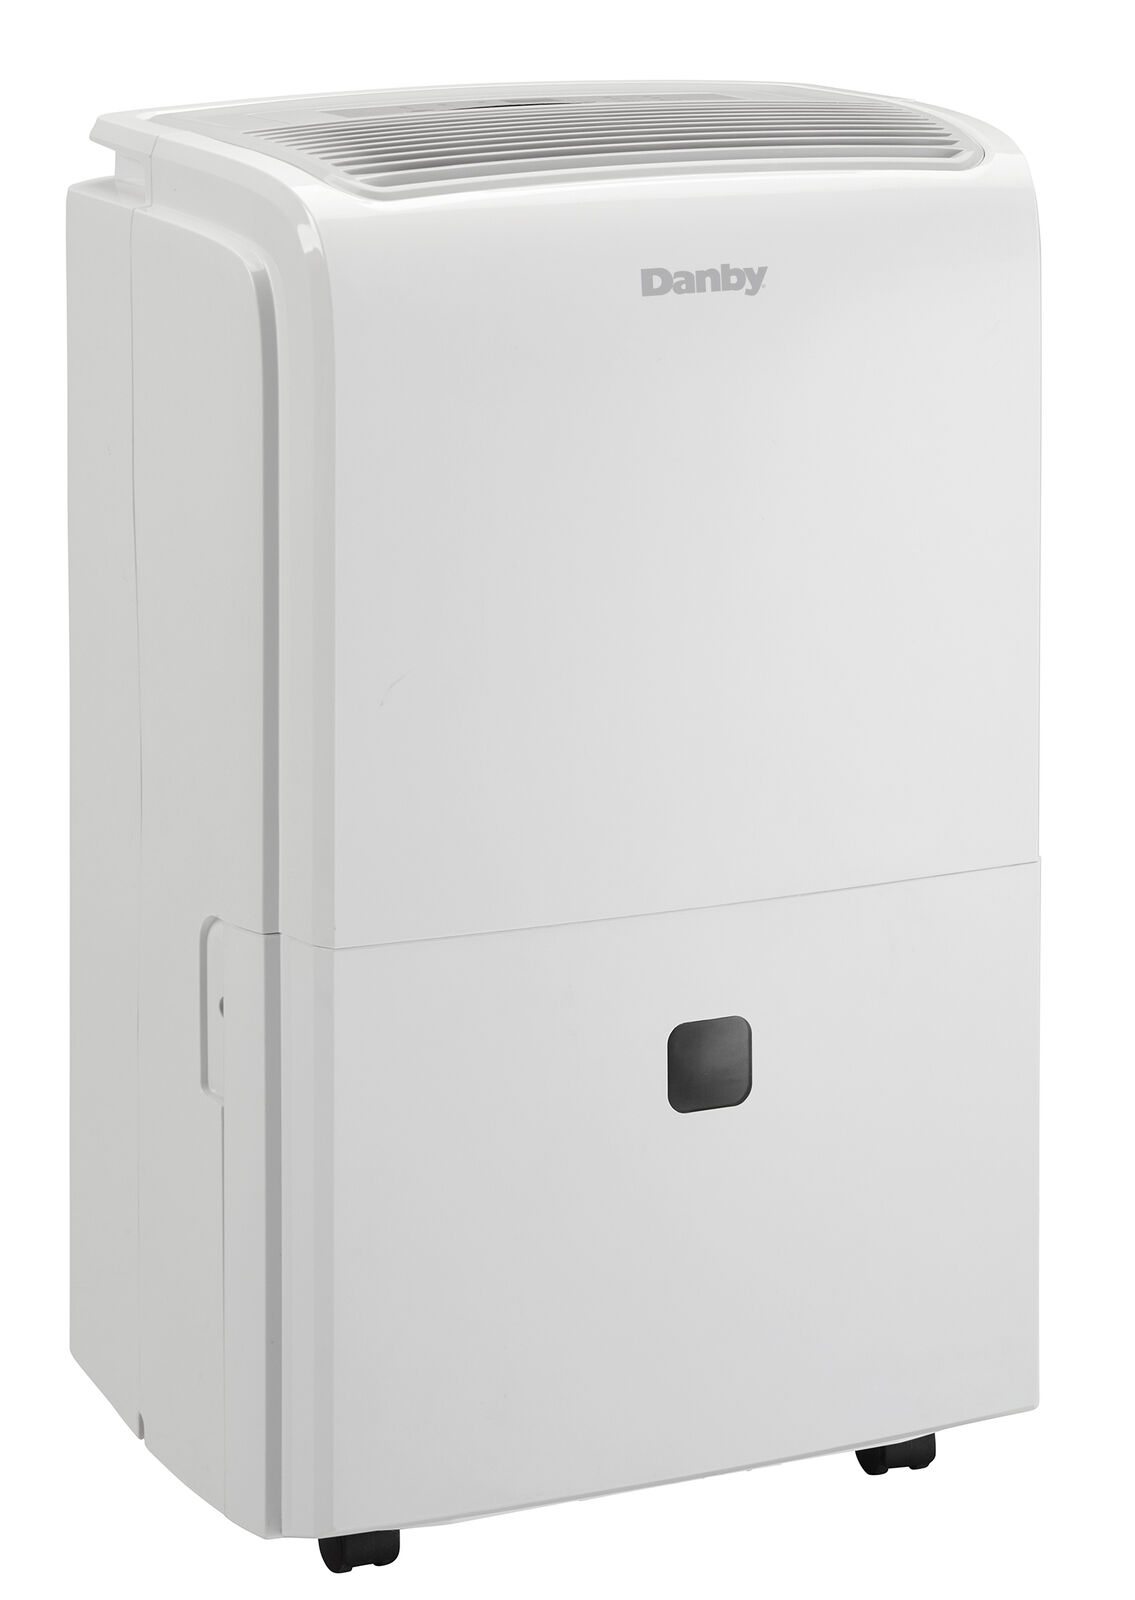 Danby 70 Pint Dehumidifier with Pump, Large, White